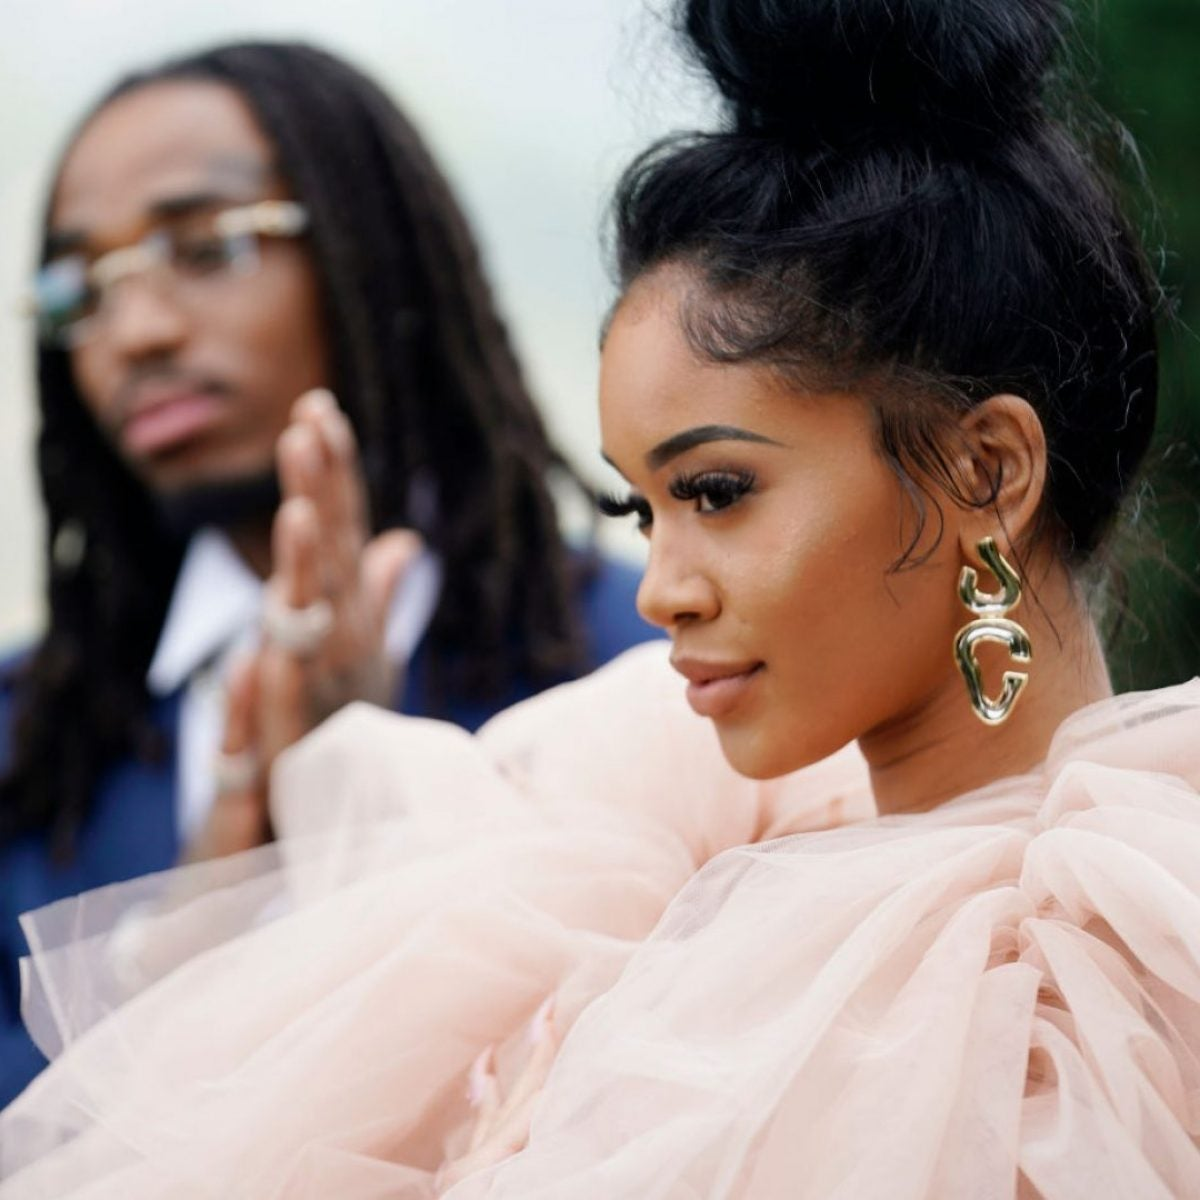 The Internet Is Outraged By A Video Showing Saweetie and Quavo In A Physical Altercation